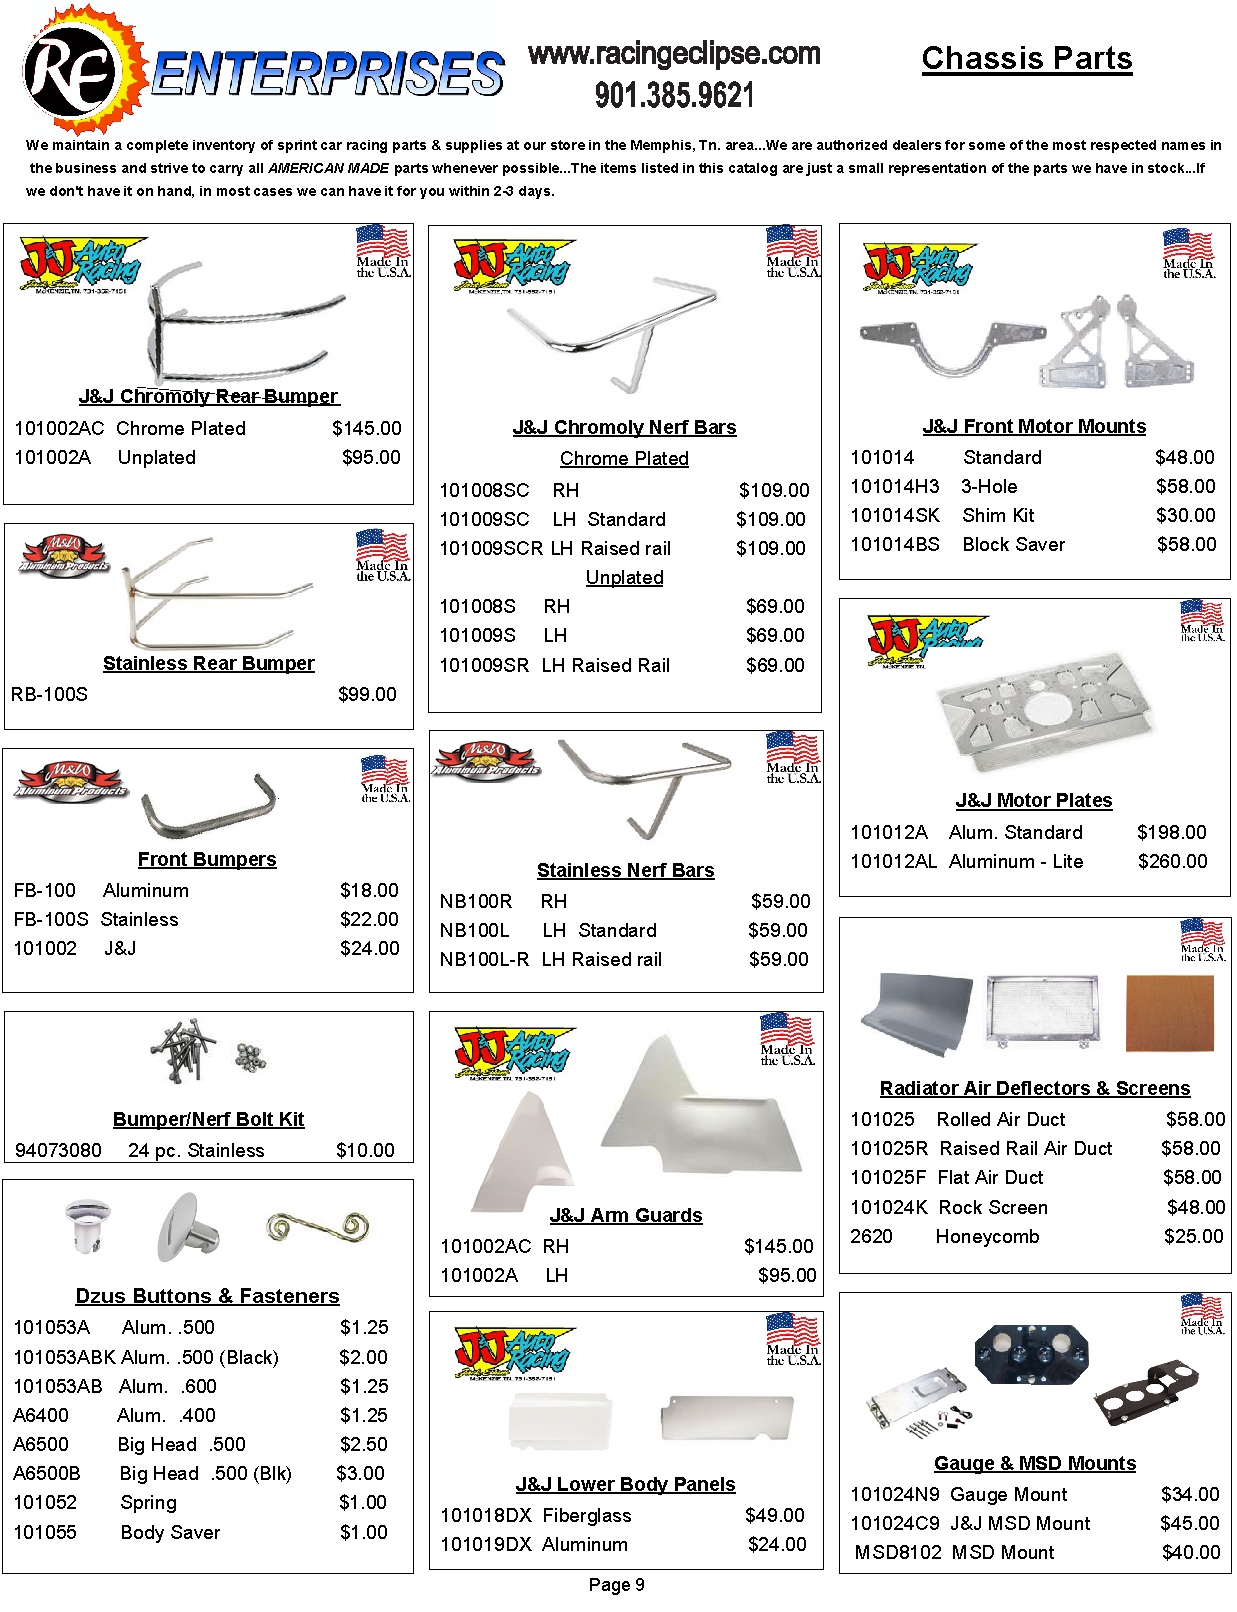 Catalog Page 9- Chassis Parts